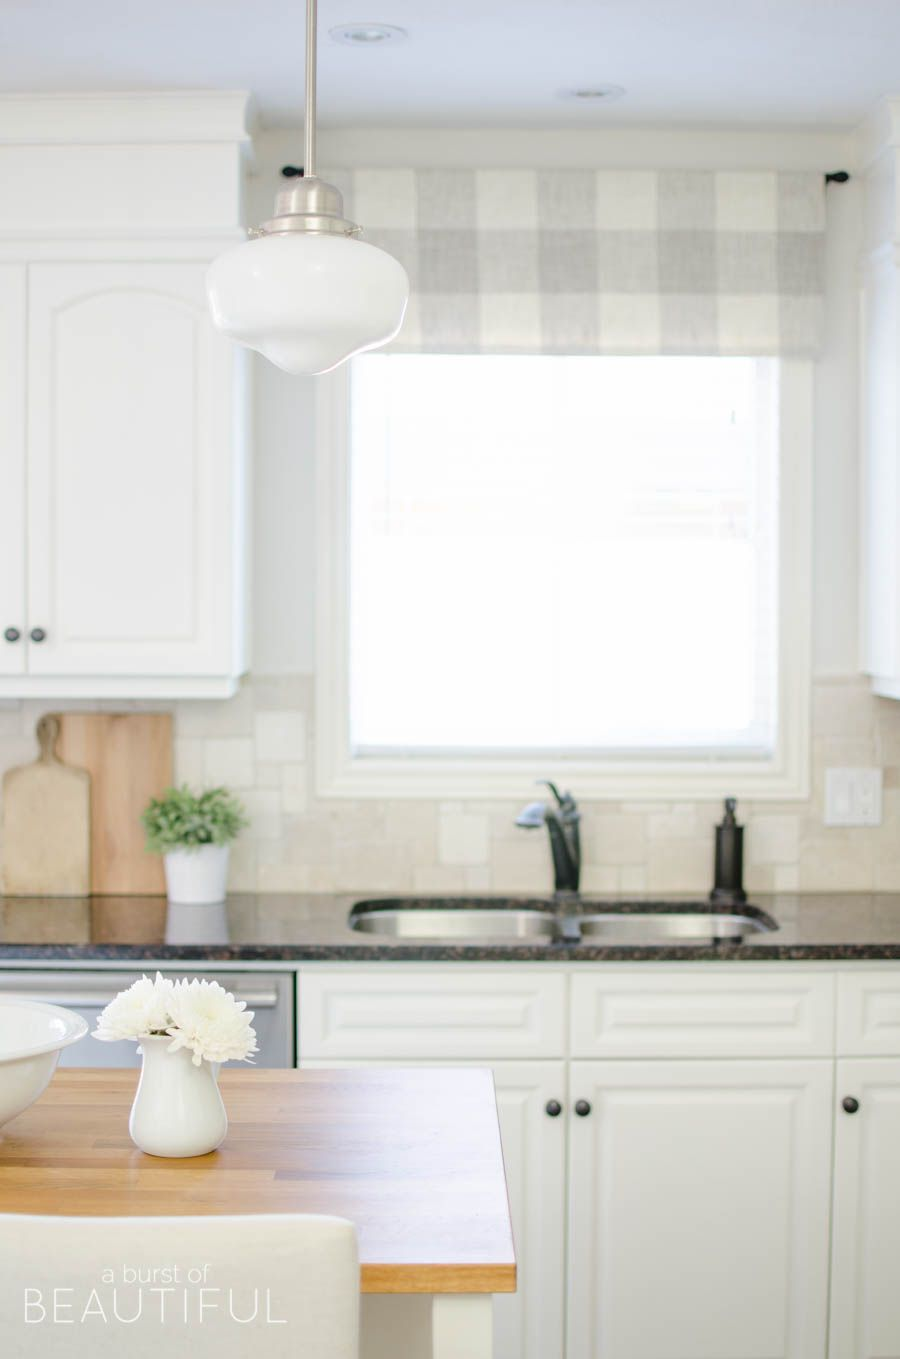 kitchen window valance table and chairs set farmhouse tutorial beautiful home a made from neutral buffalo check fabric compliments this simple perfectly visit aburstofbeautiful com for the full